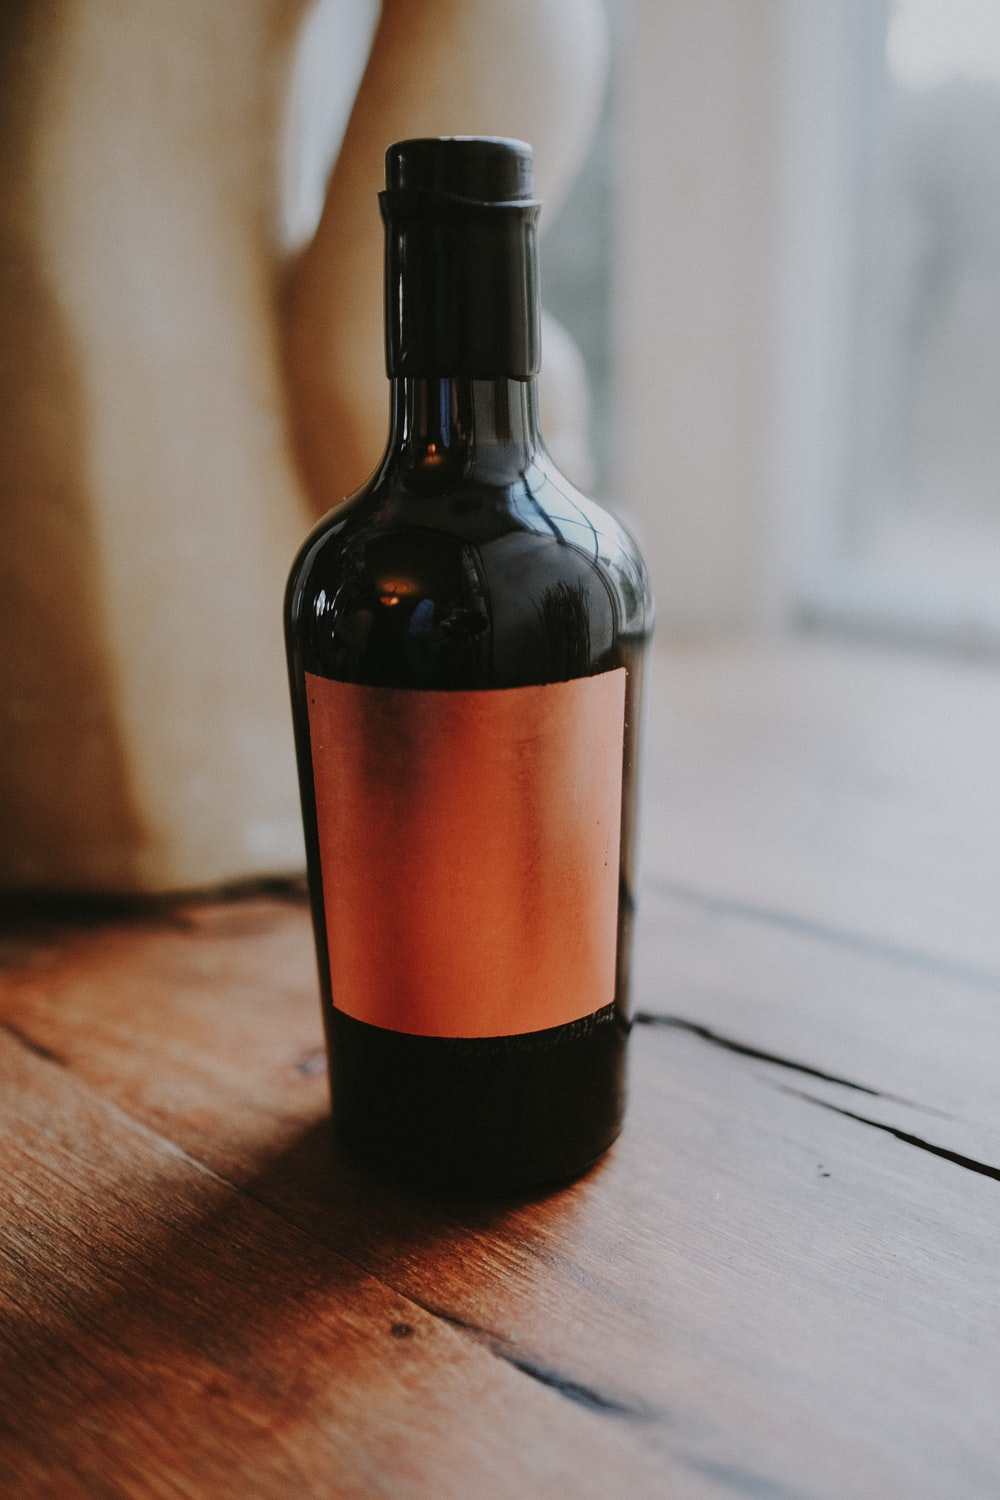 brown glass bottle on wooden surface